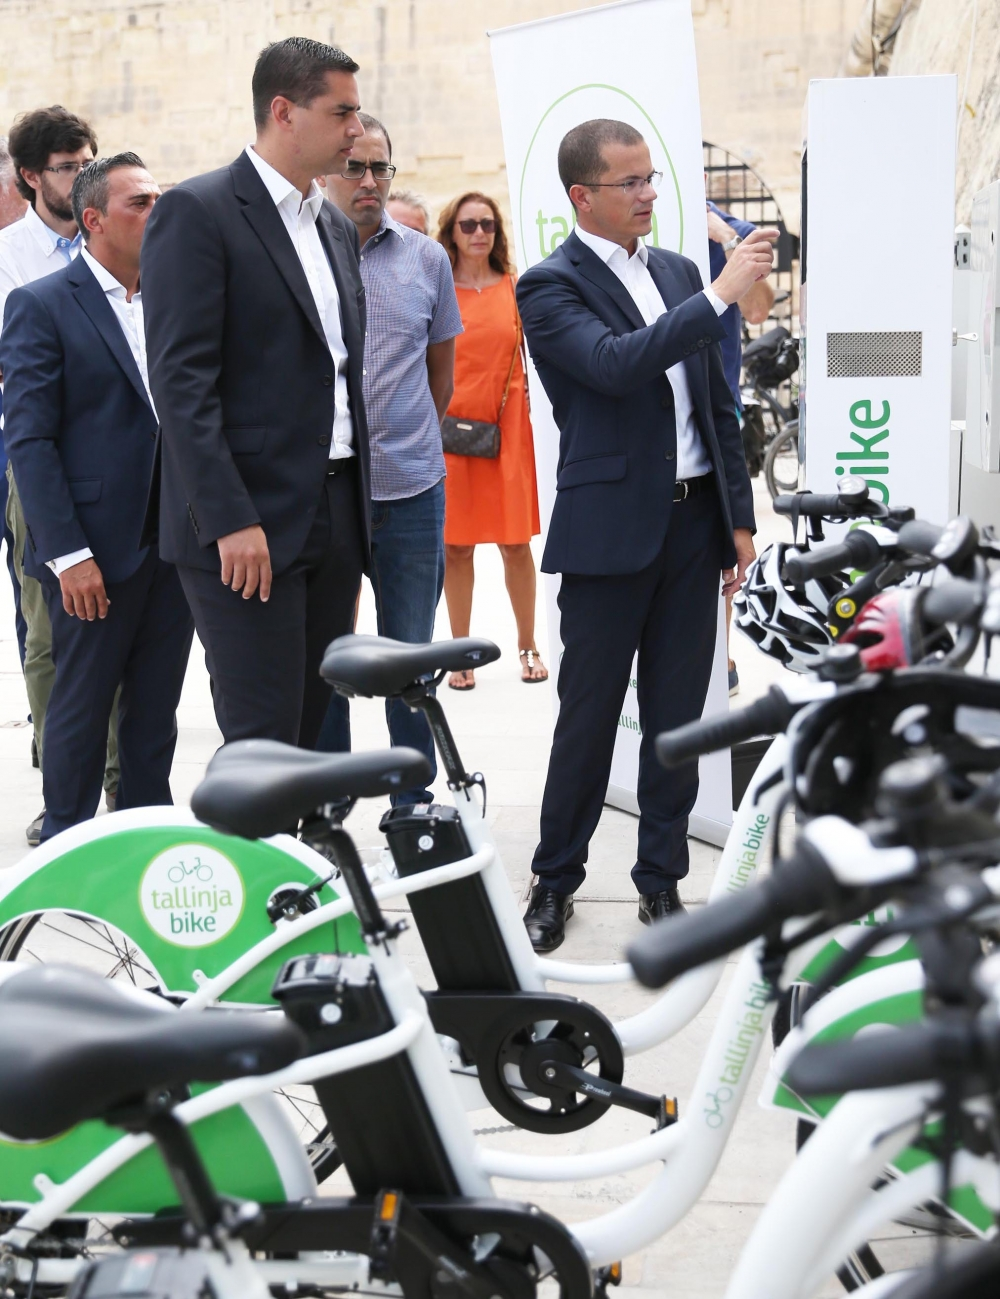 E-bike sharing service around Valletta launched